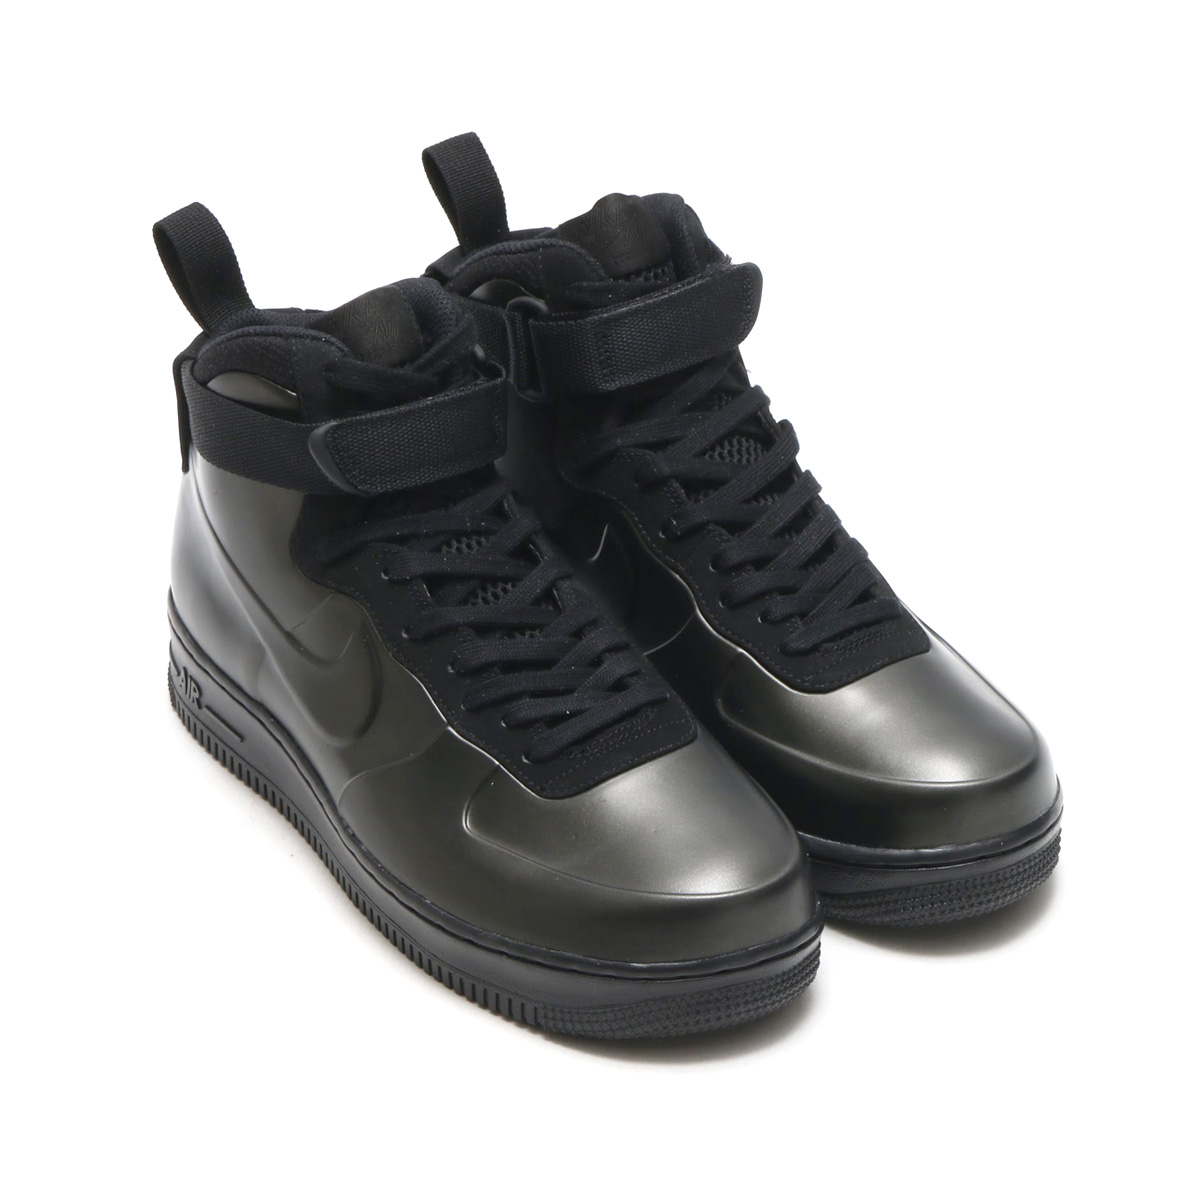 c29338136b3 ... ☆ maximum point 10 times that is targeted for all articles! NIKE AIR  FORCE 1 FOAMPOSITE CUP (Nike air force 1 フォームポジットカップ) ...